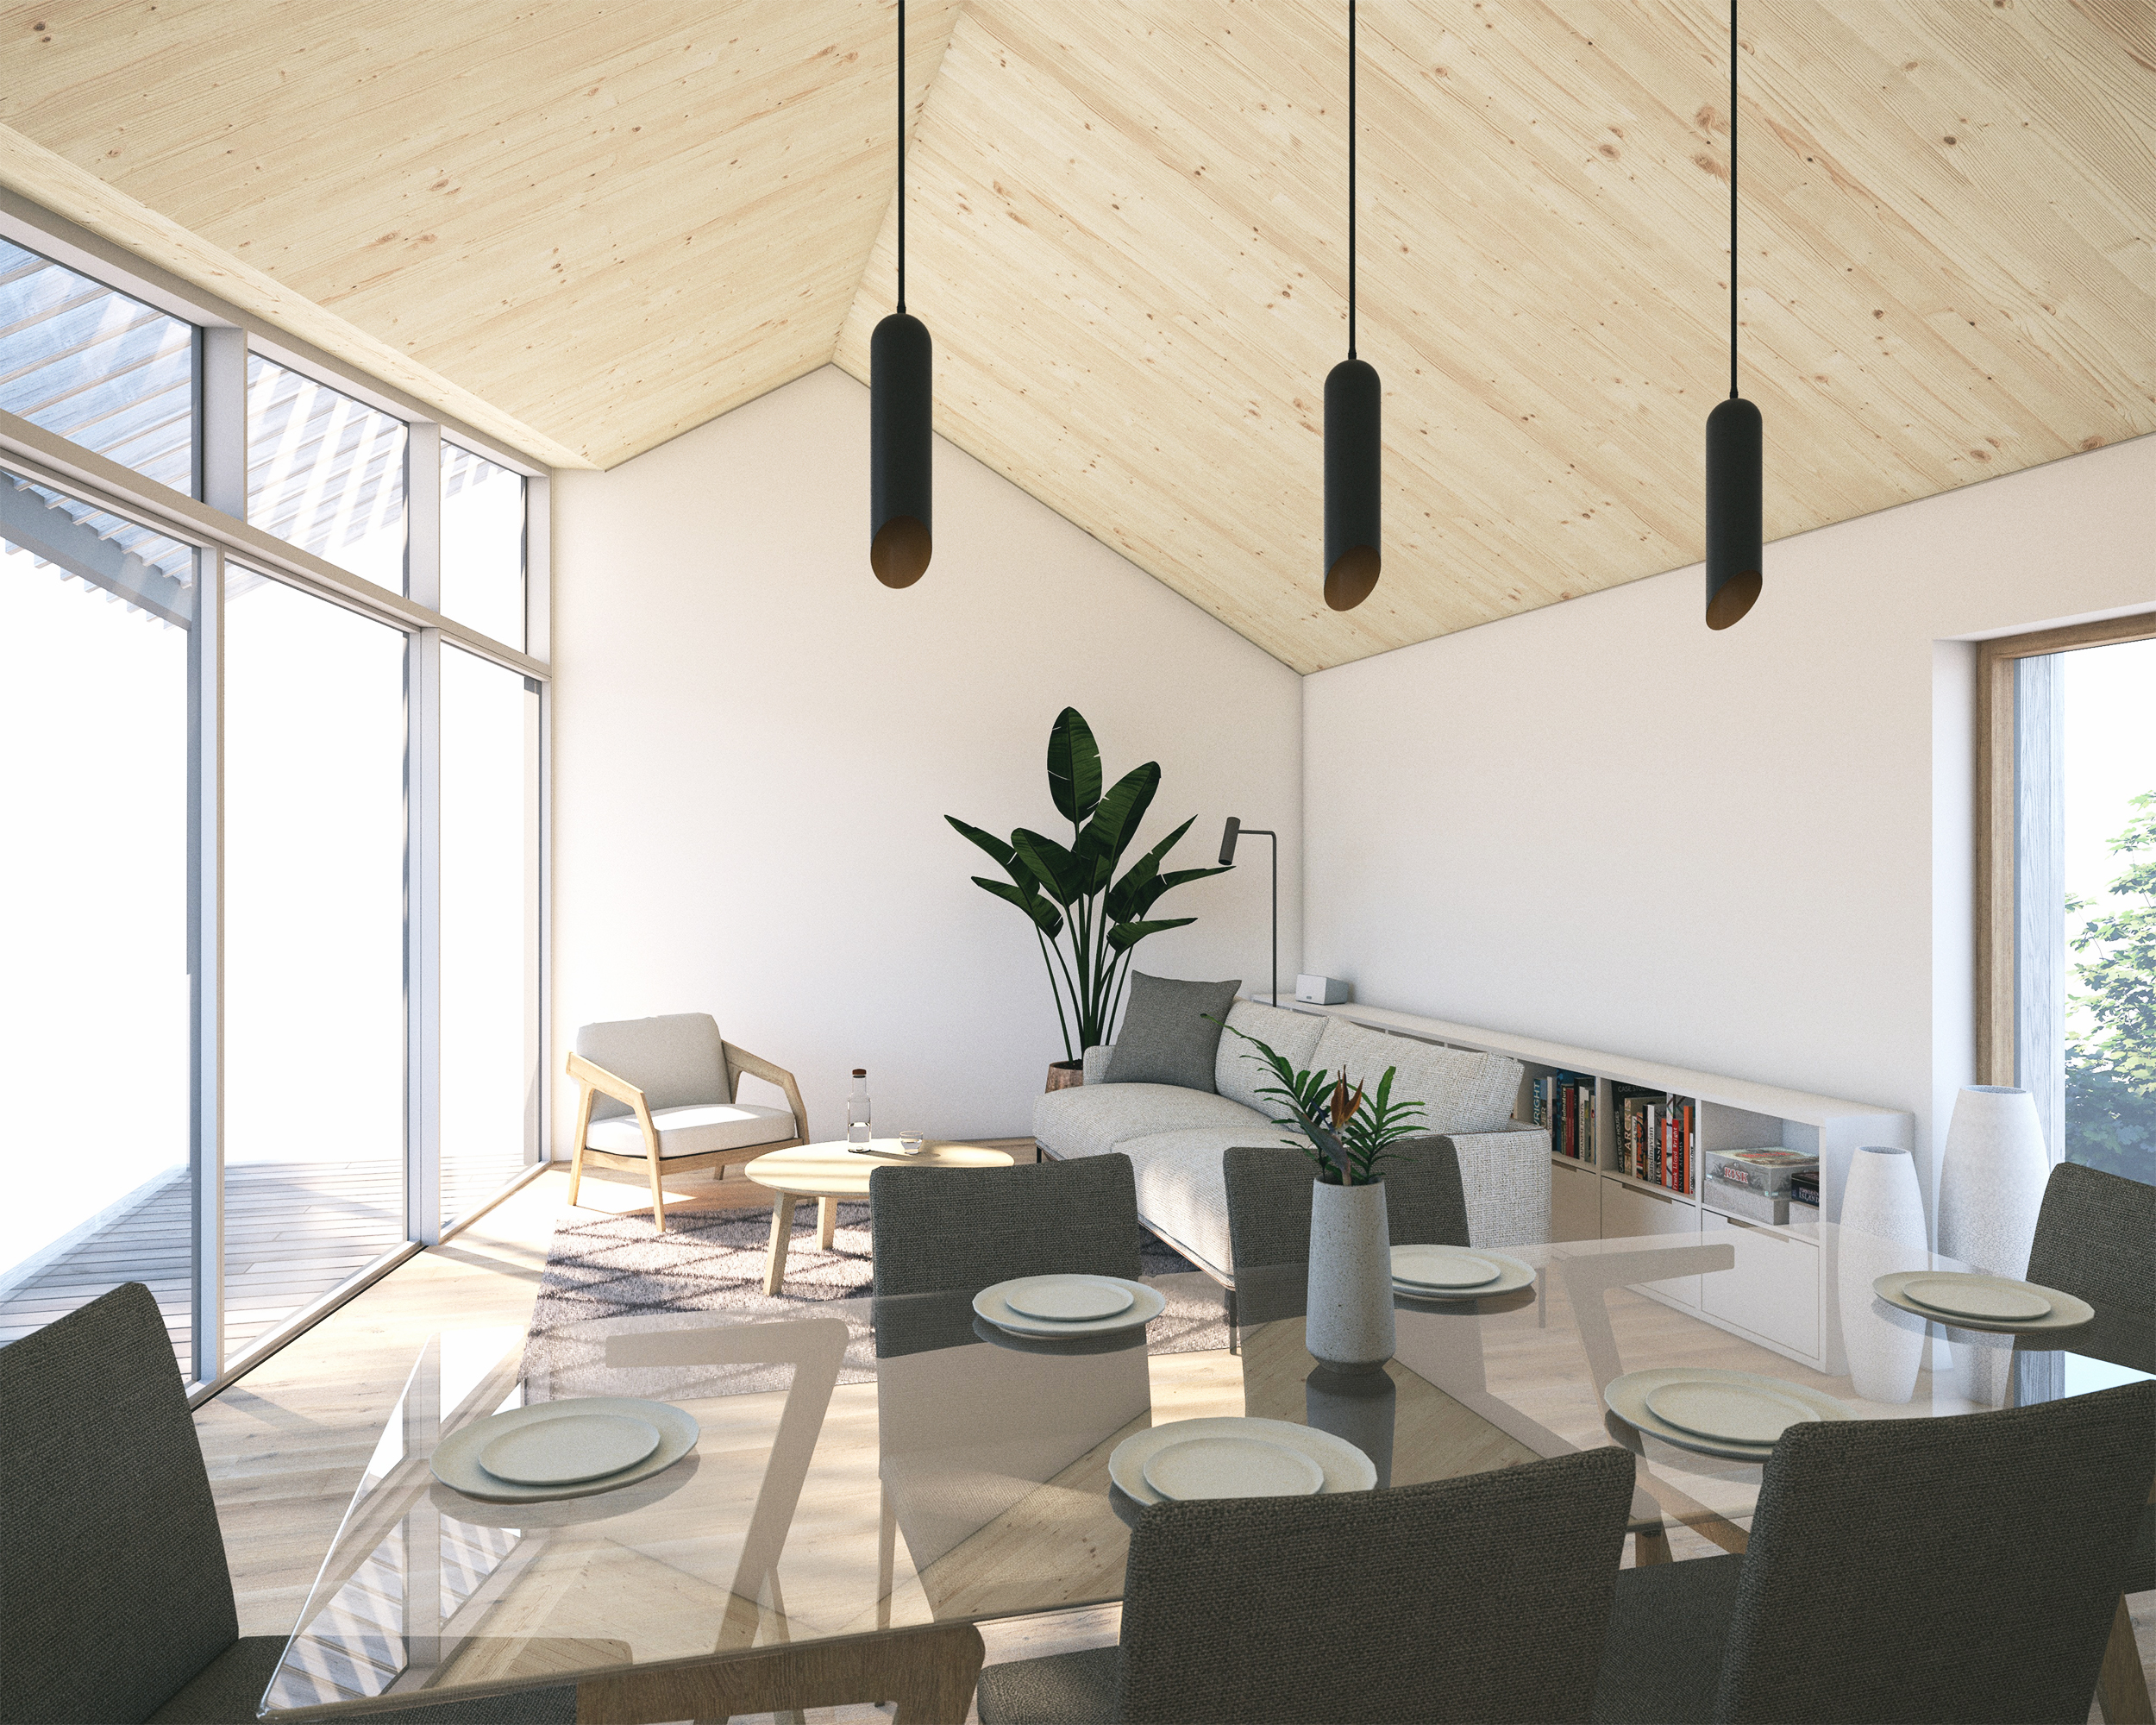 Computer render illustrating the first floor open plan living areas, with exposed cross-laminated timber (CLT) ceilings